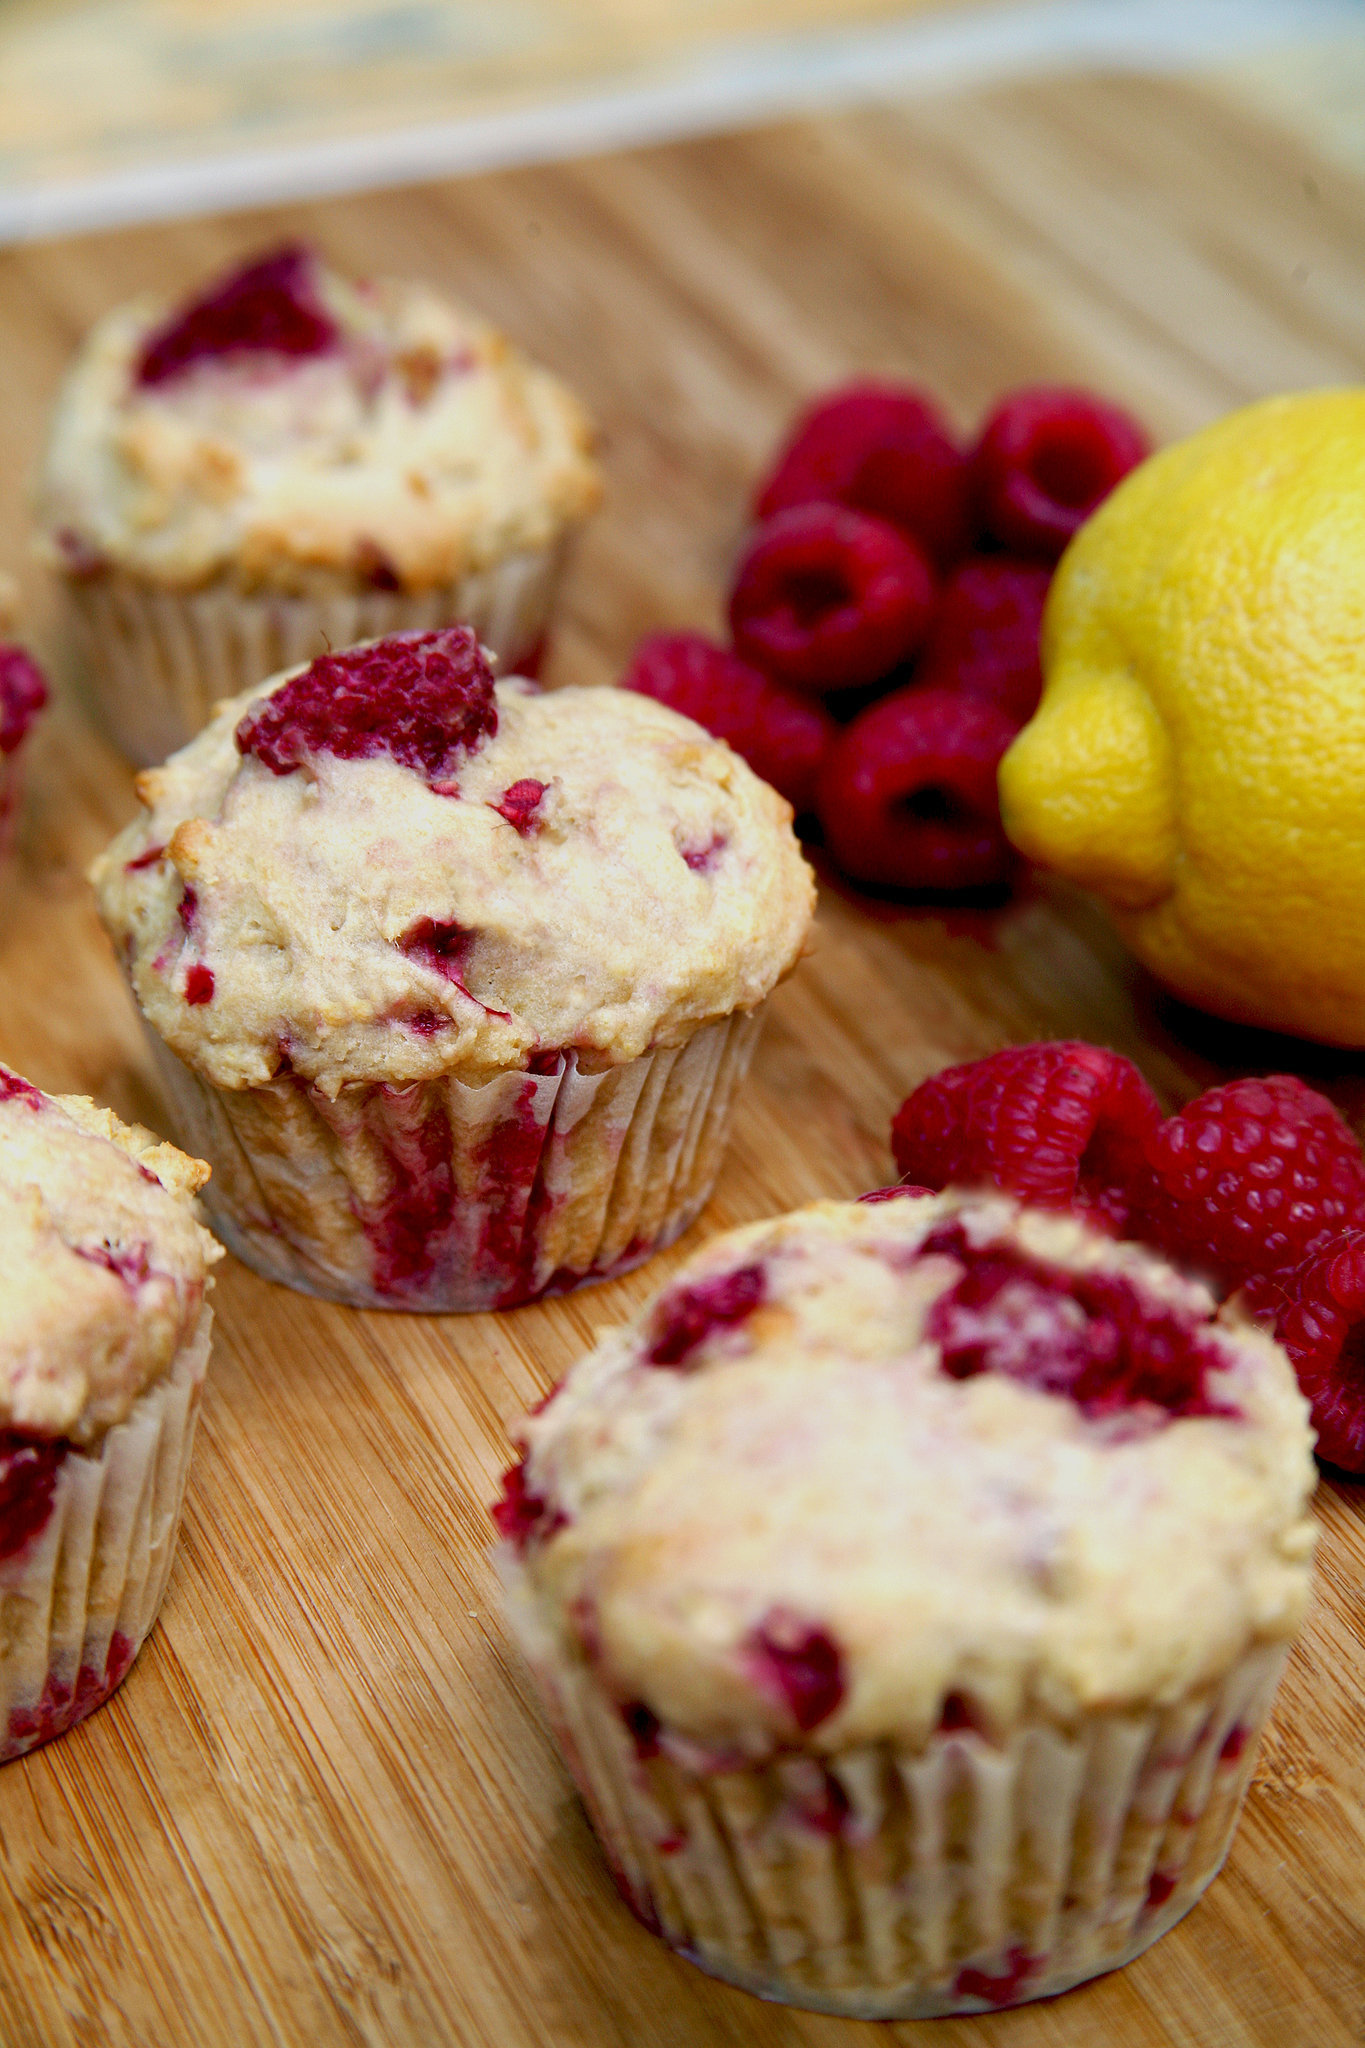 ... For Low-Sugar, High-Protein Lemon Raspberry Muffins | POPSUGAR Fitness